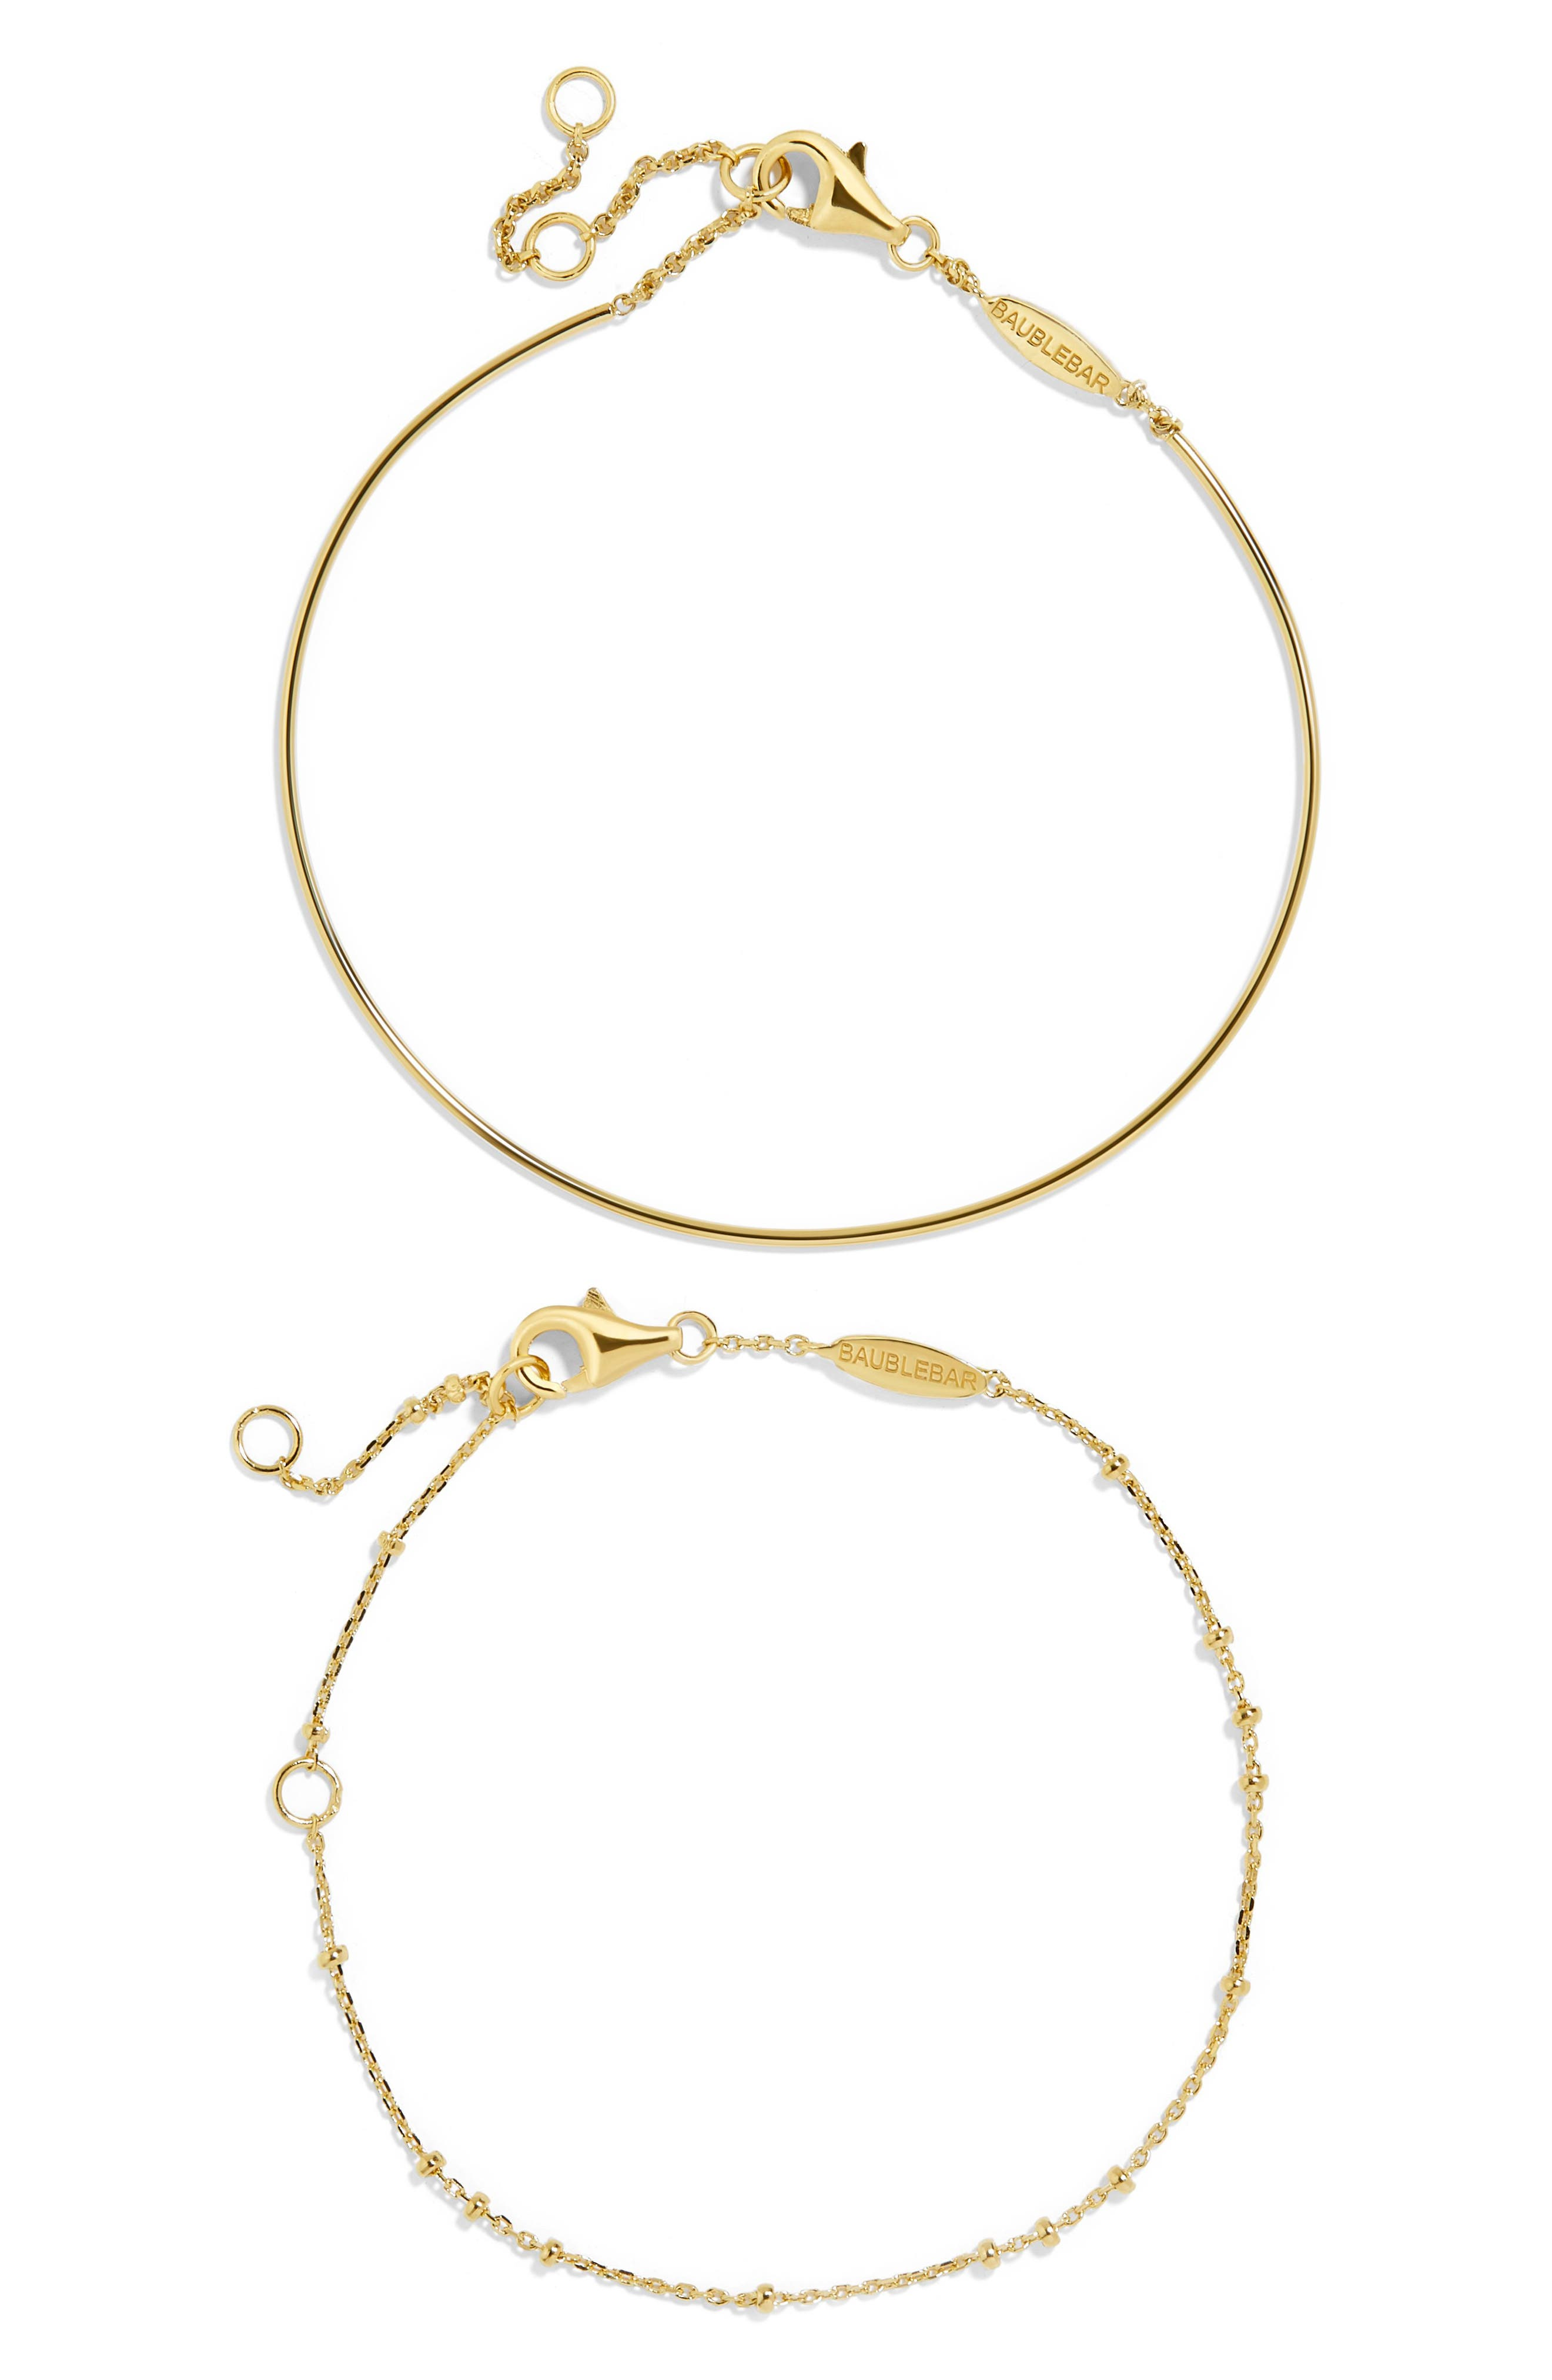 Opposto Everyday Fine Set of 2 Bracelets,                         Main,                         color, Gold